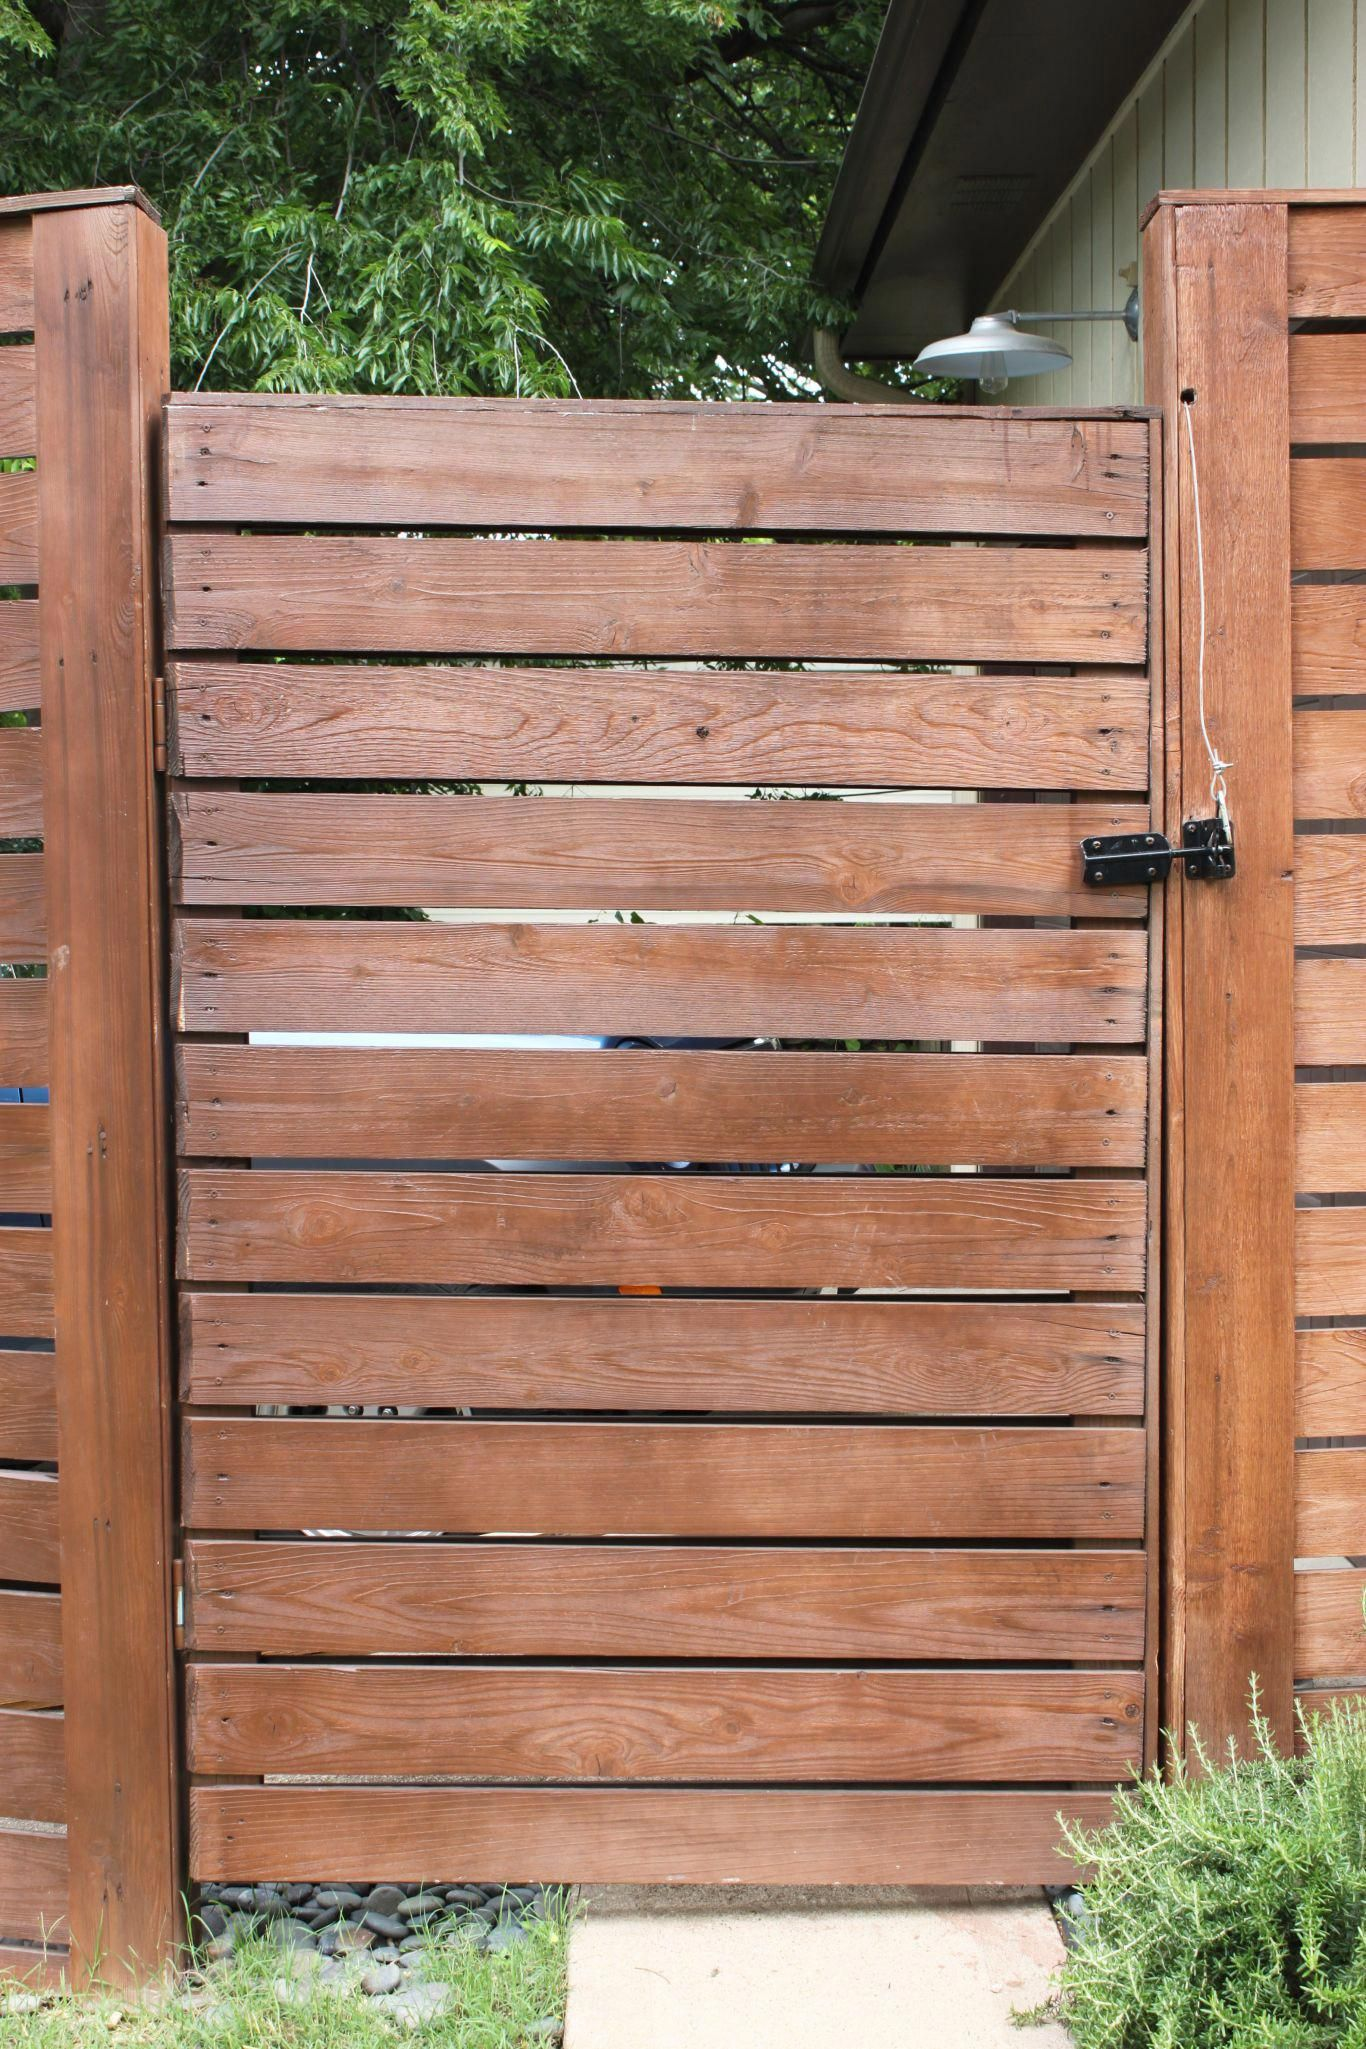 This Photo Can Be A Very Inspiring And Amazing Idea Cattlepanelfence Building A Wooden Gate Wooden Fence Gate Wood Fence Gates